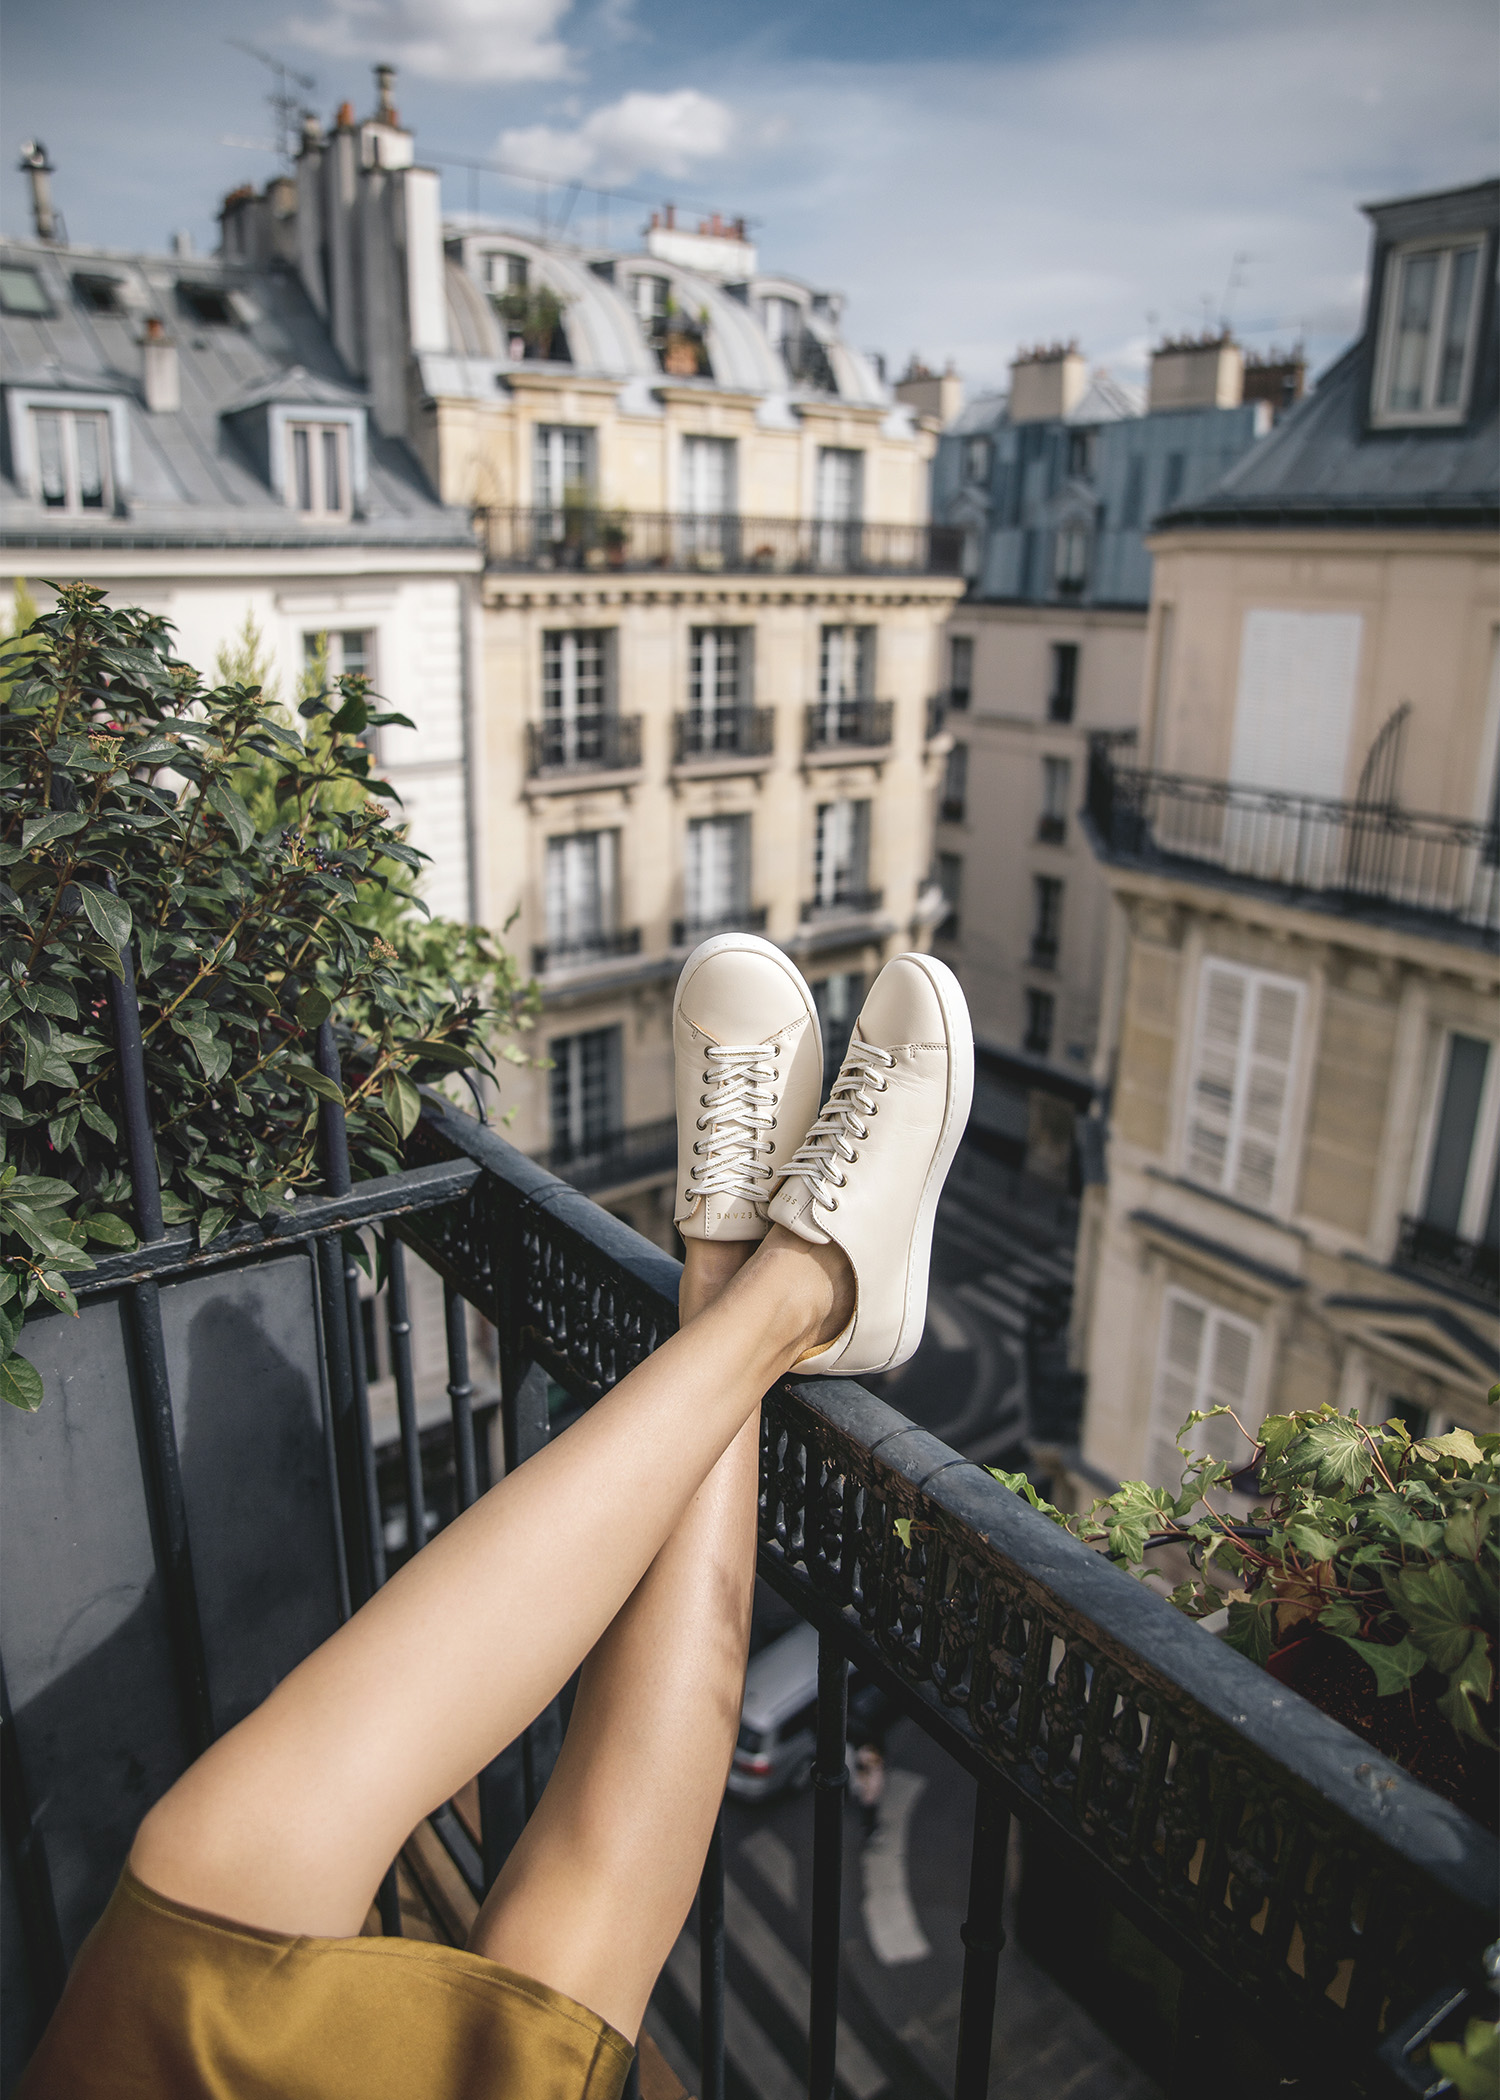 Jenny Tsang of Tsangtastic wearing sneakers and silk dress on balcony in Paris